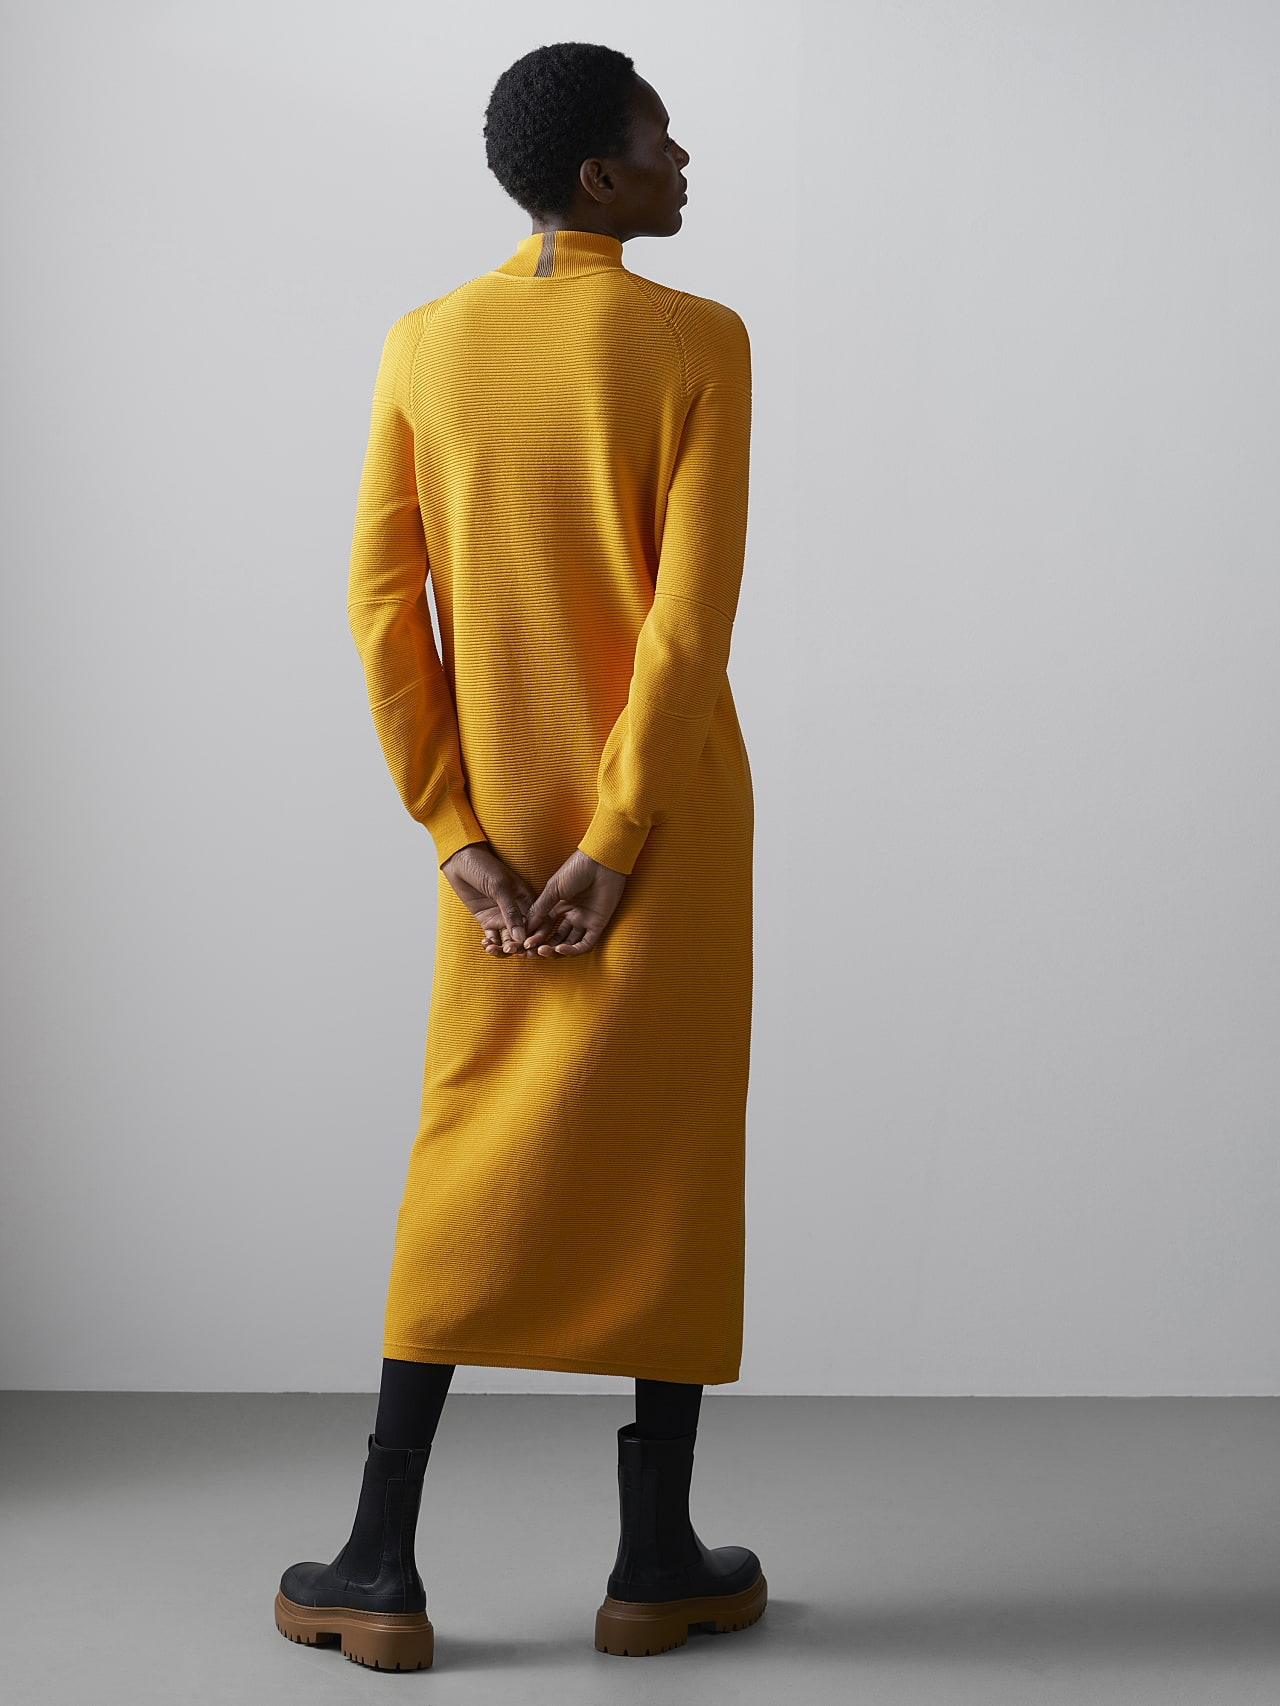 FOXEE V1.Y5.02 Seamless 3D Knit Mock-Neck Dress yellow Front Main Alpha Tauri